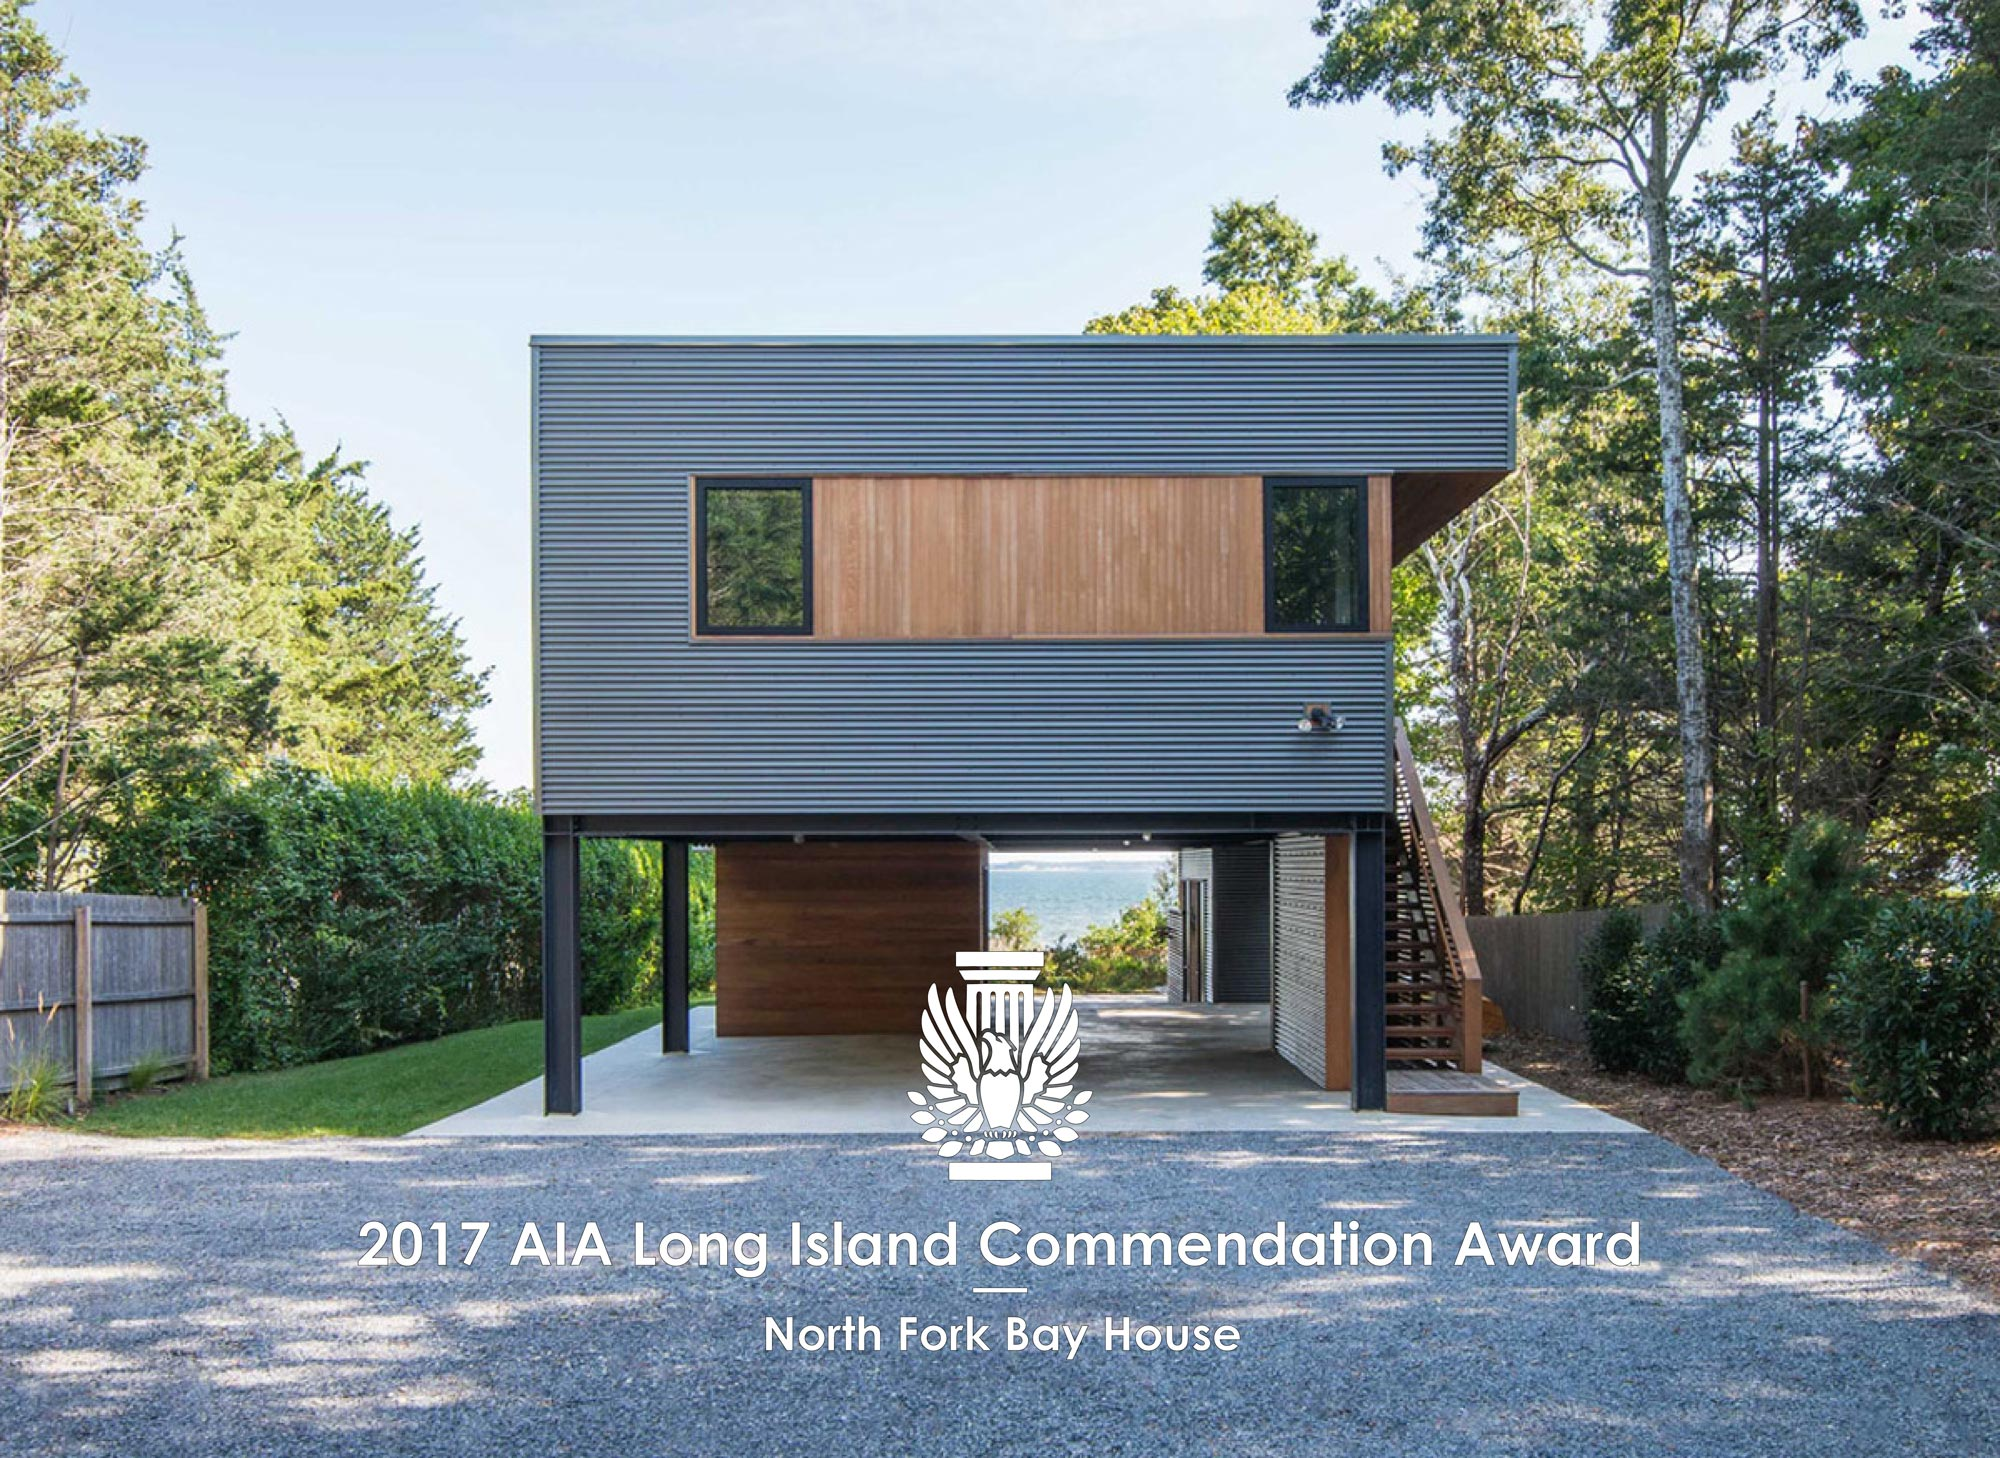 res4-resolution-4-architecture-modern-home-prefab-north-fork-bay-house-aia-long-island-commendation-award-logo.jpg